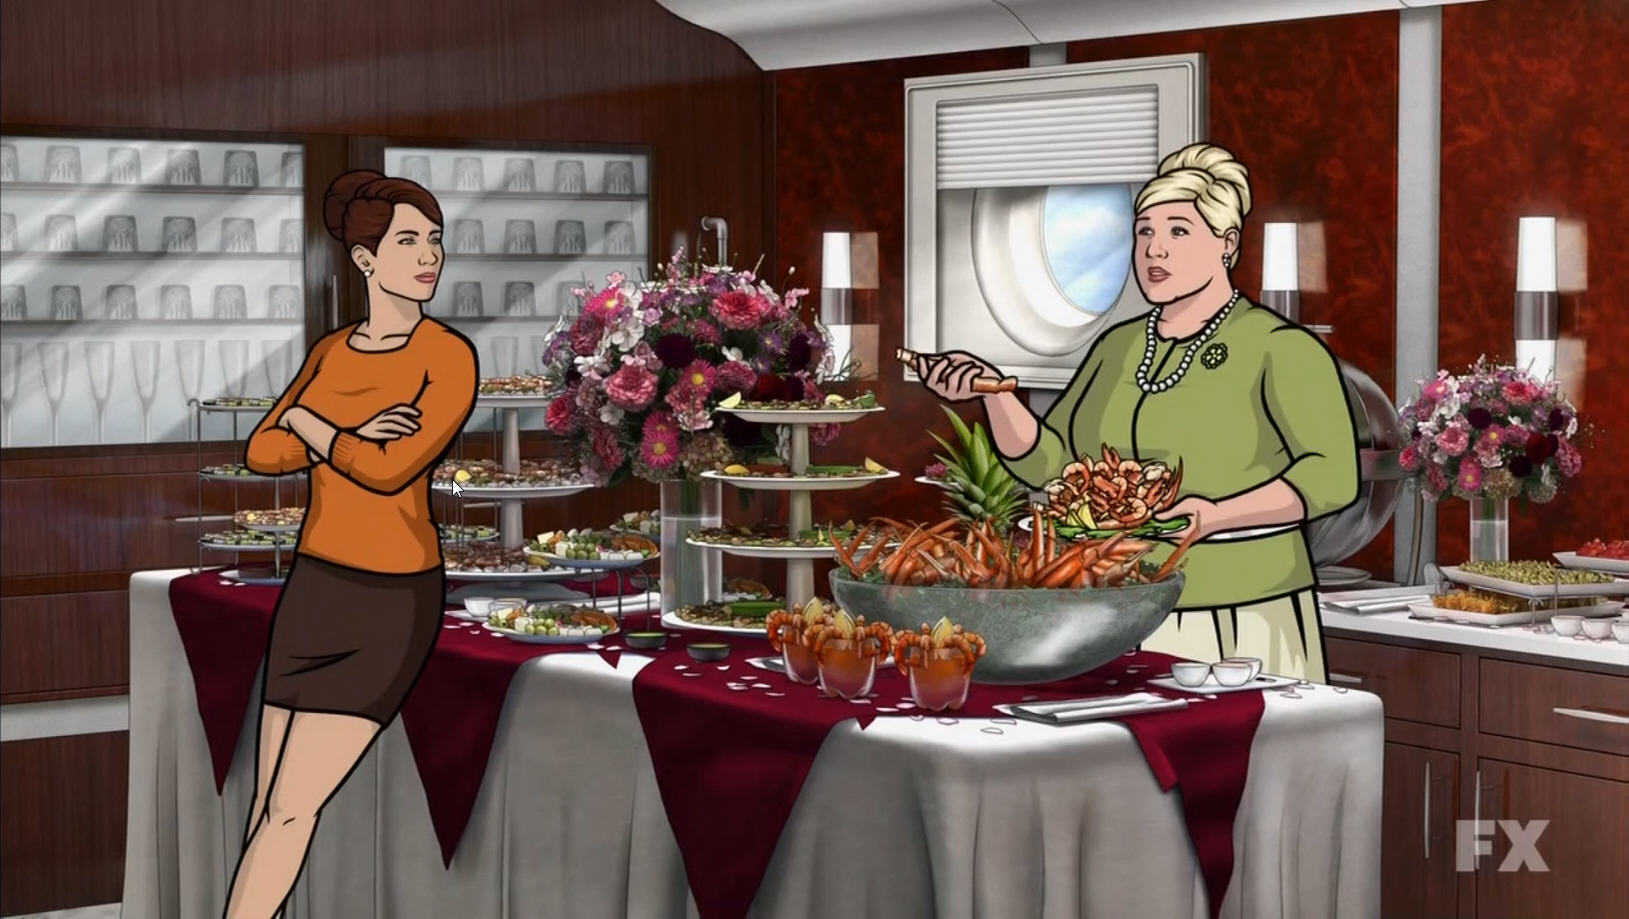 A detailed buffet, one of the animation backgrounds from Archer.